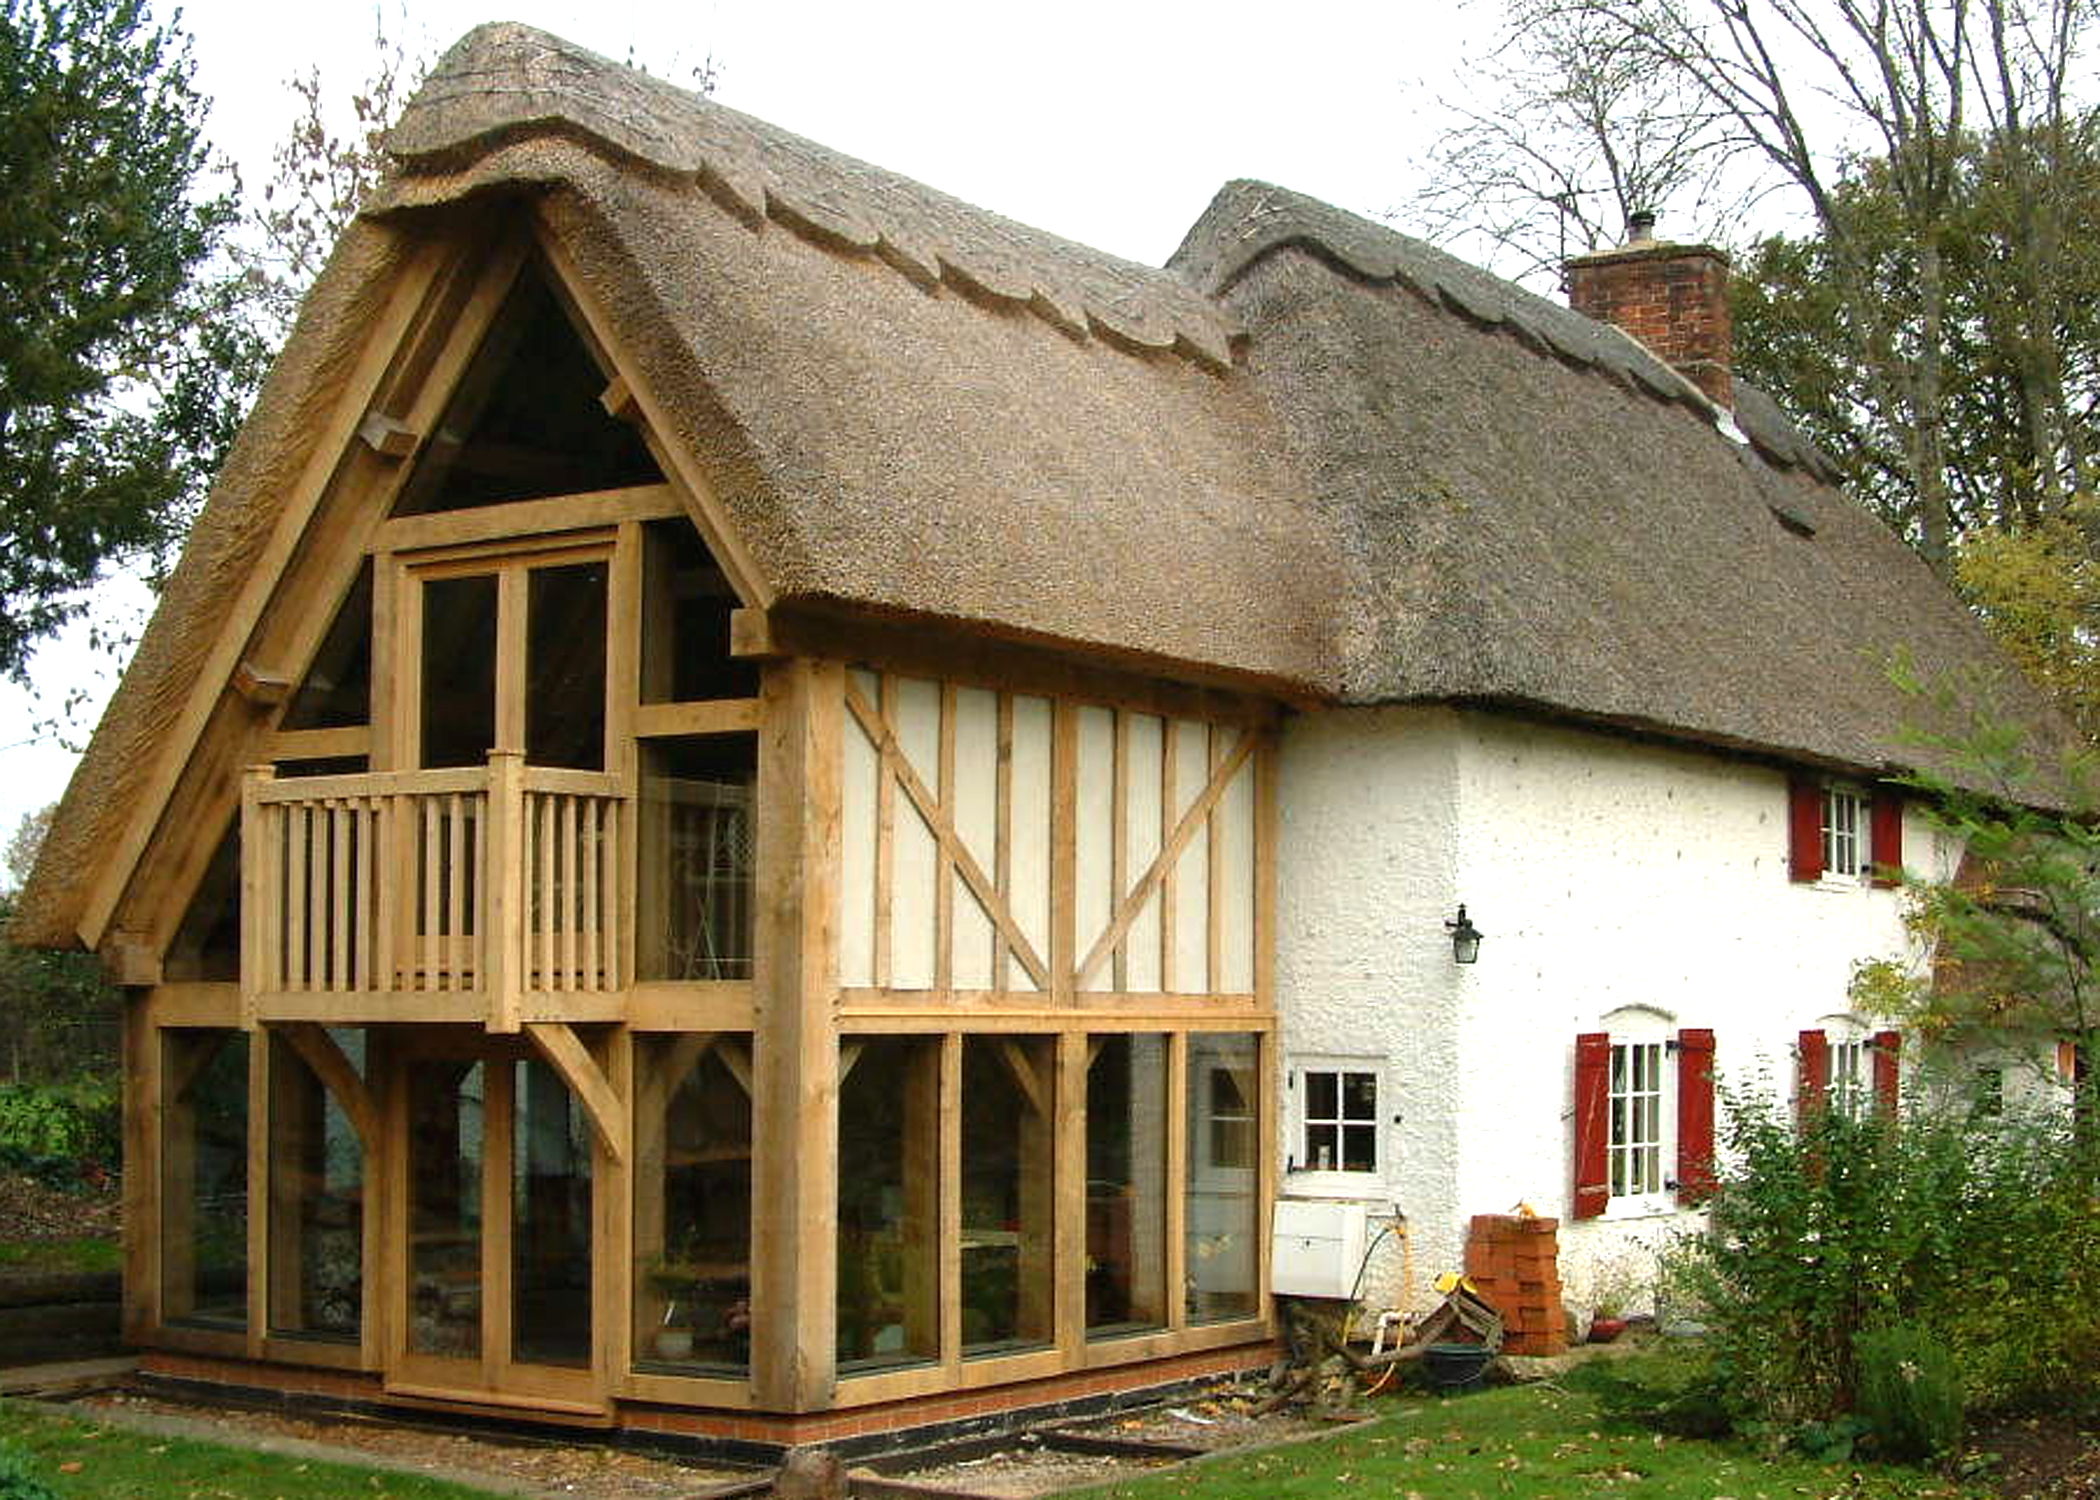 Oak frames oxfordshire englishoakframes for Oak framed garden room